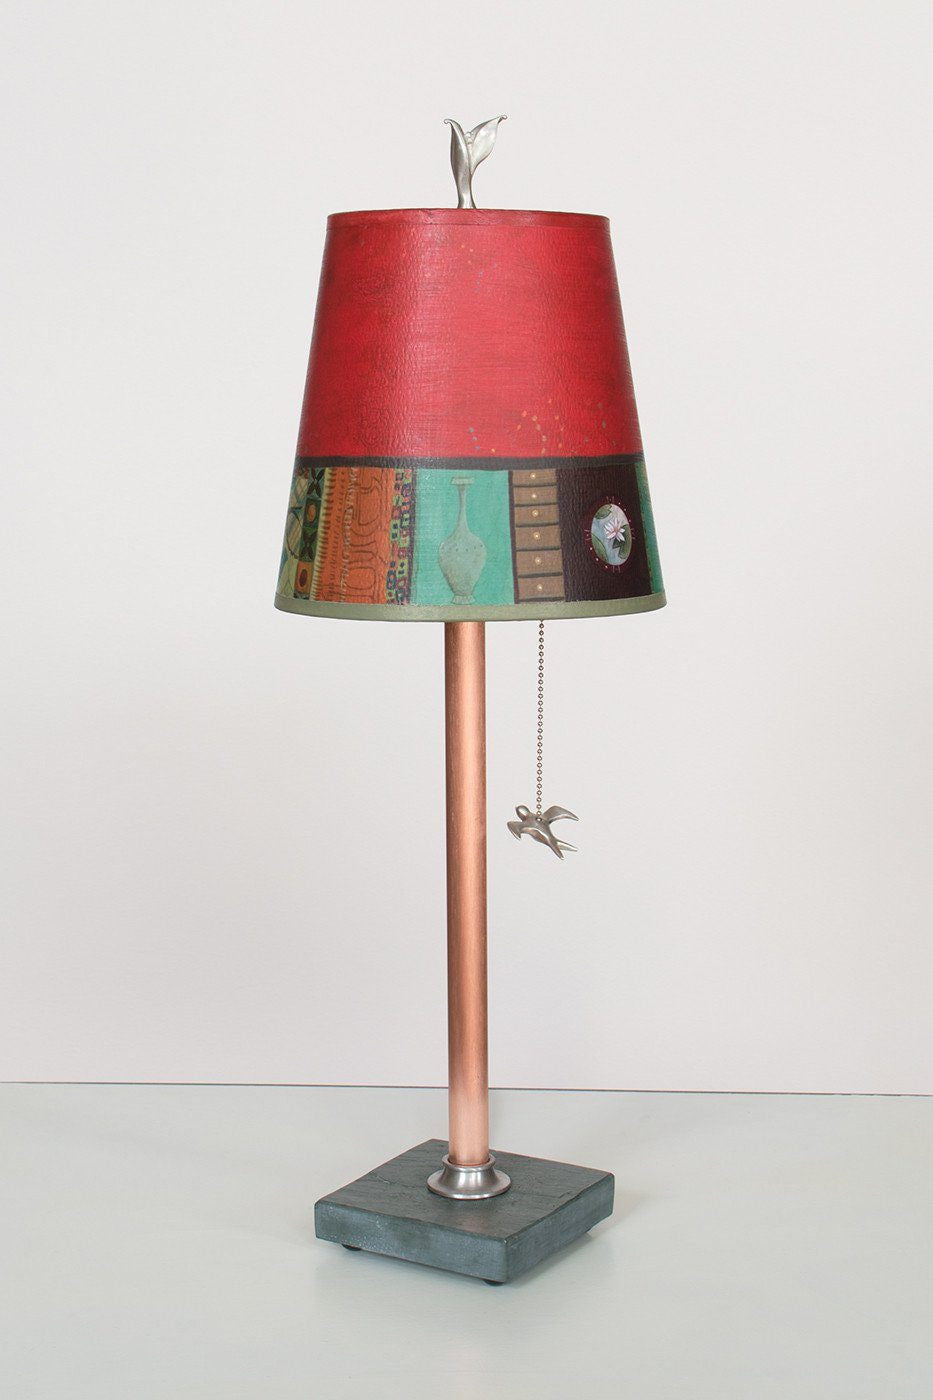 ... Copper Table Lamp On Vermont Slate Base With Small Drum Shade In Red  Match Lit